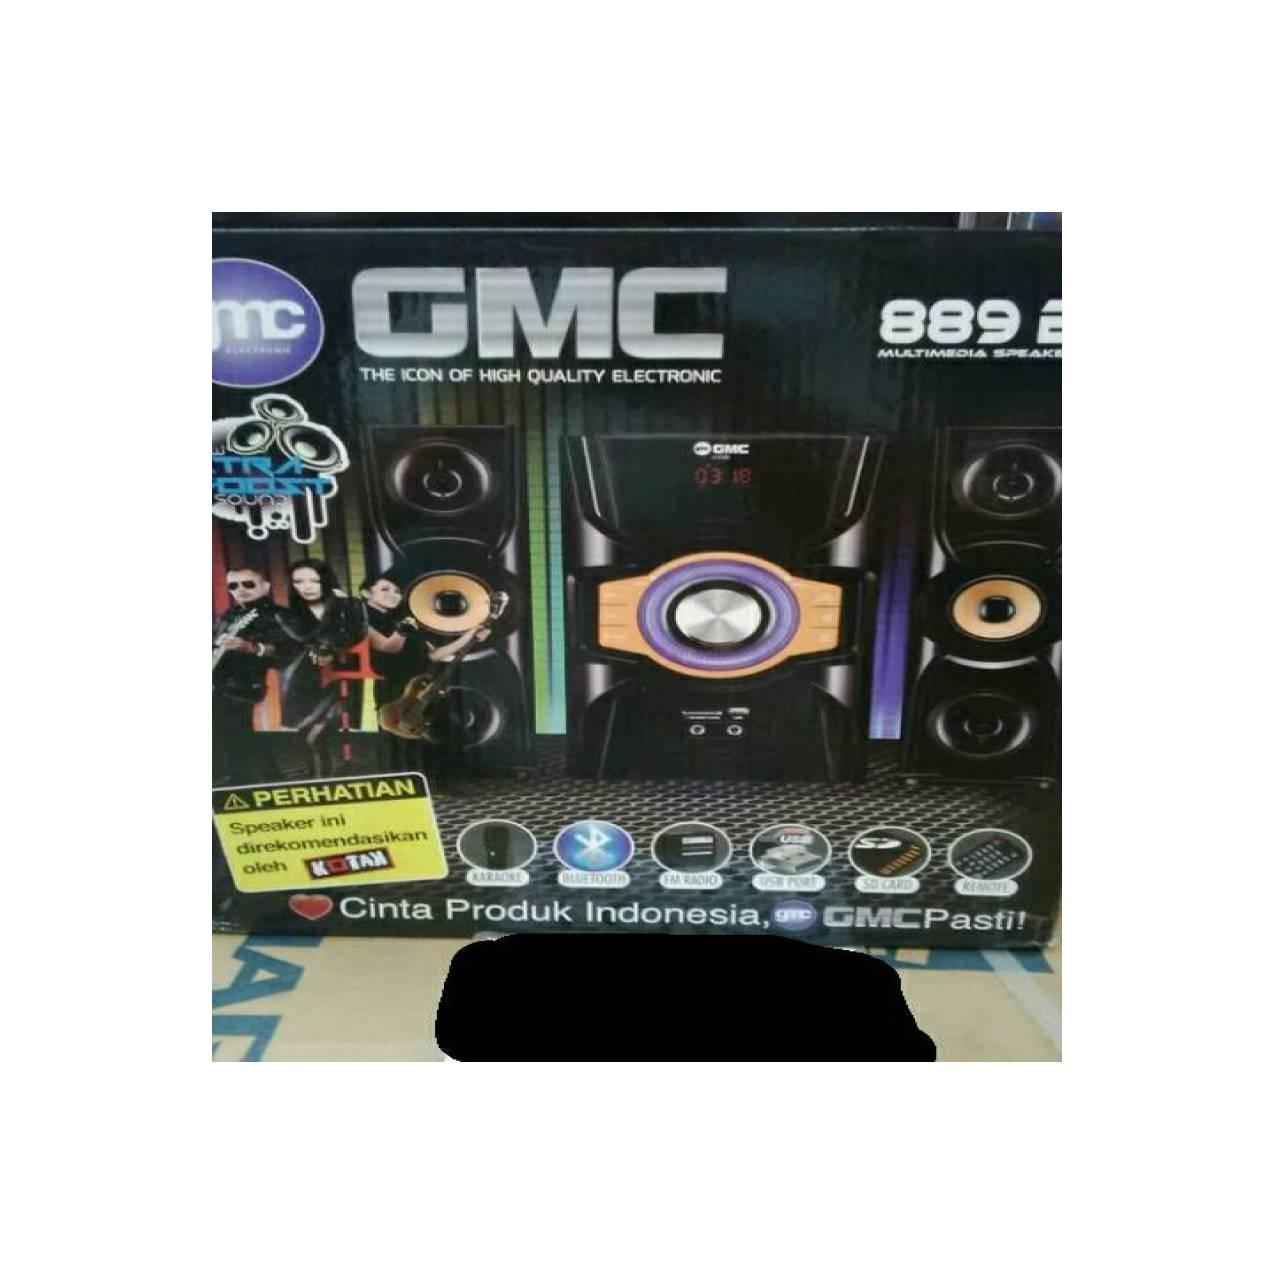 GMC SPEAKER BLUETOTH TYPE 889B SUARA MANTAP